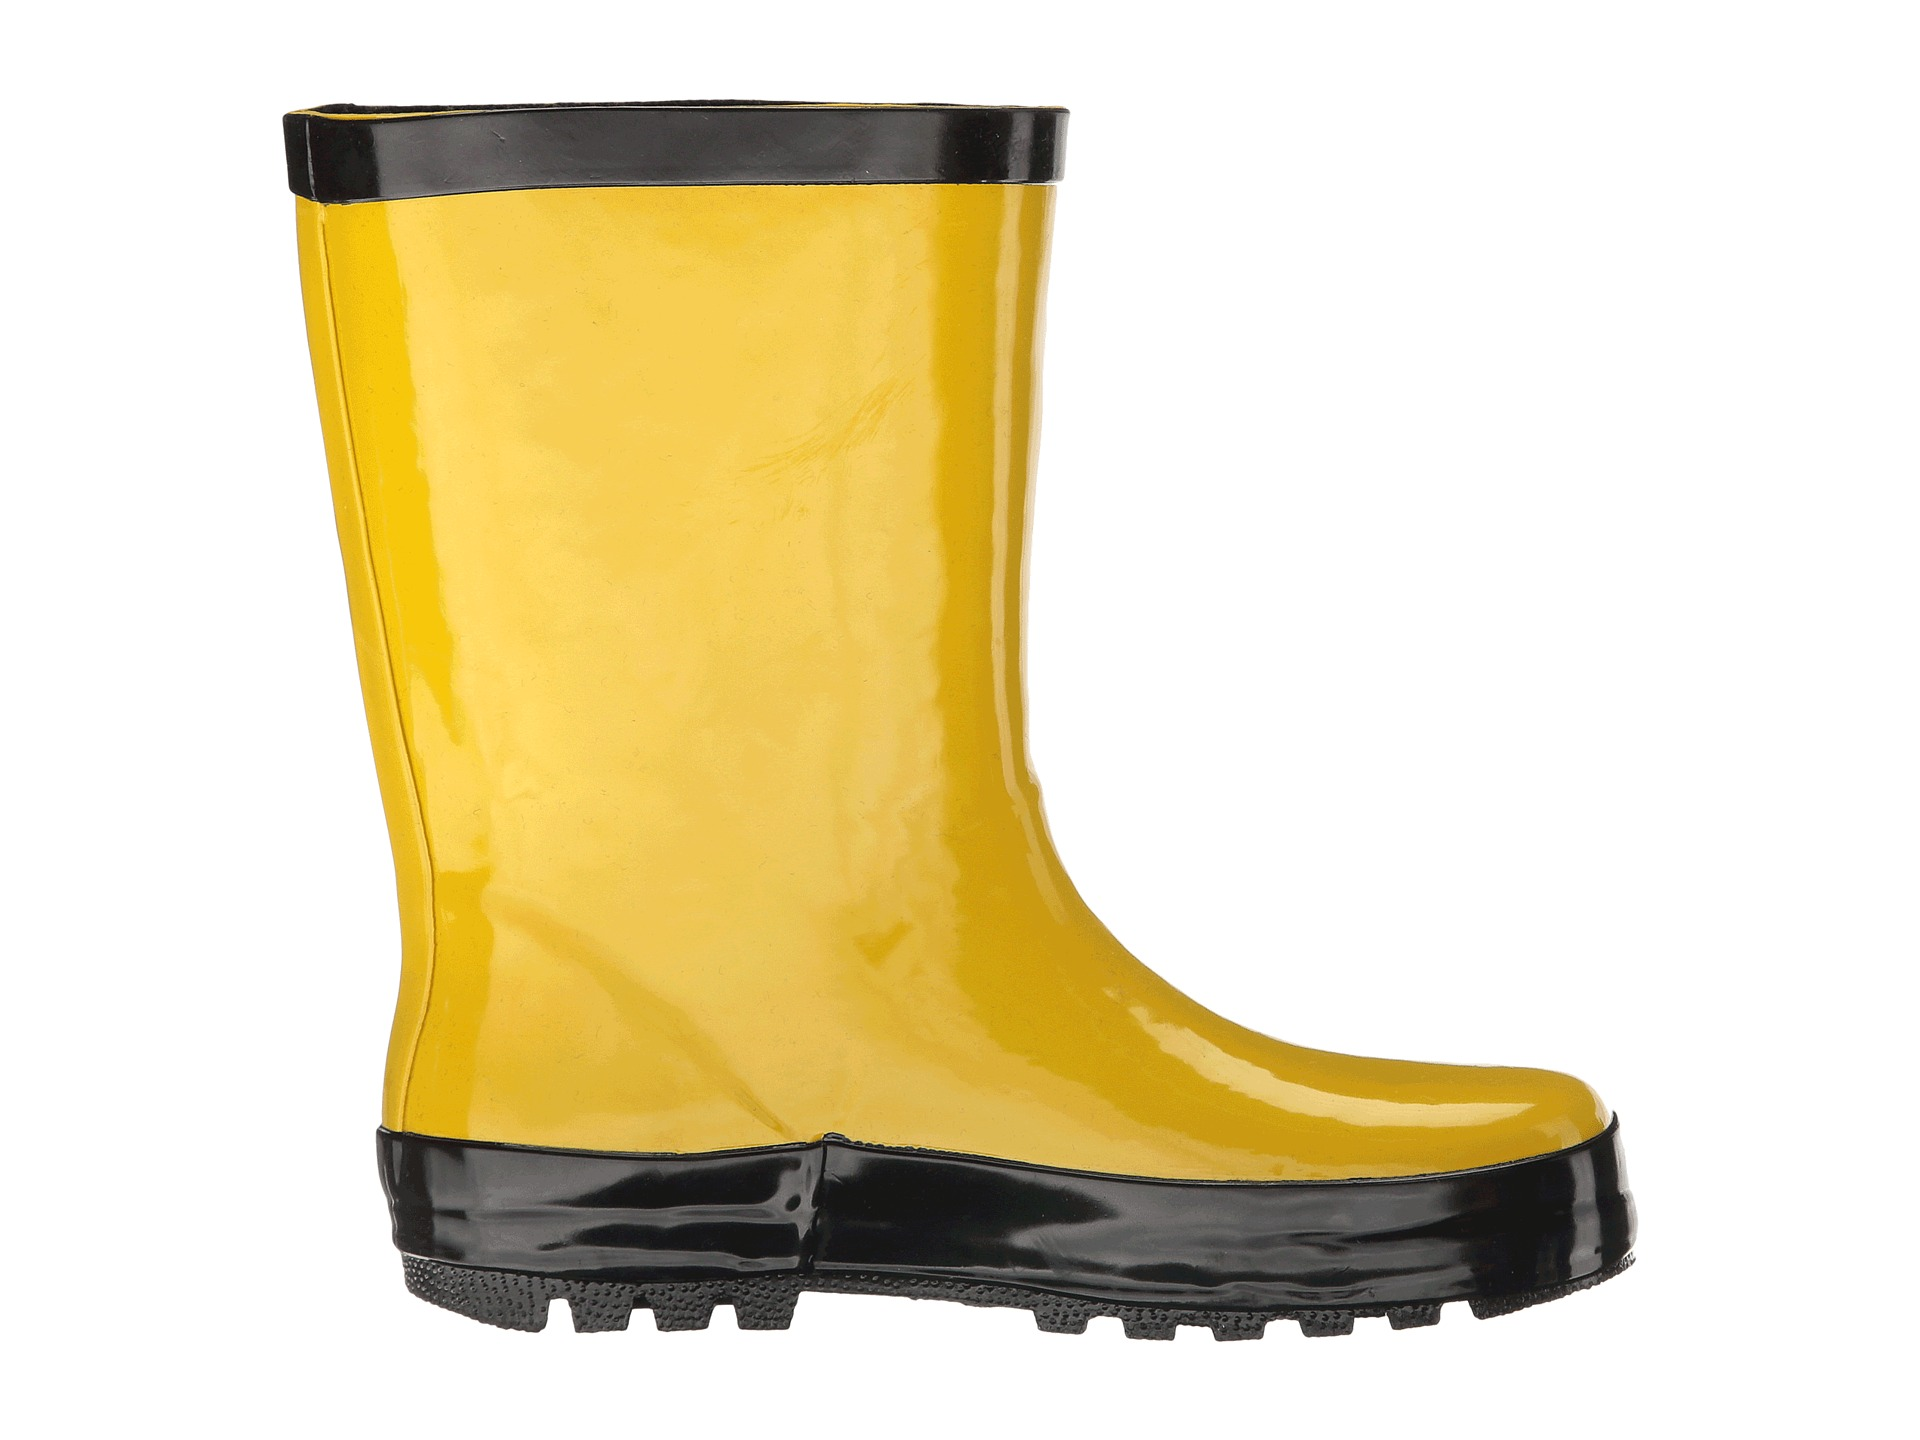 Stonz Rainboots (Toddler/Little Kid/Big Kid) - Zappos.com Free ...